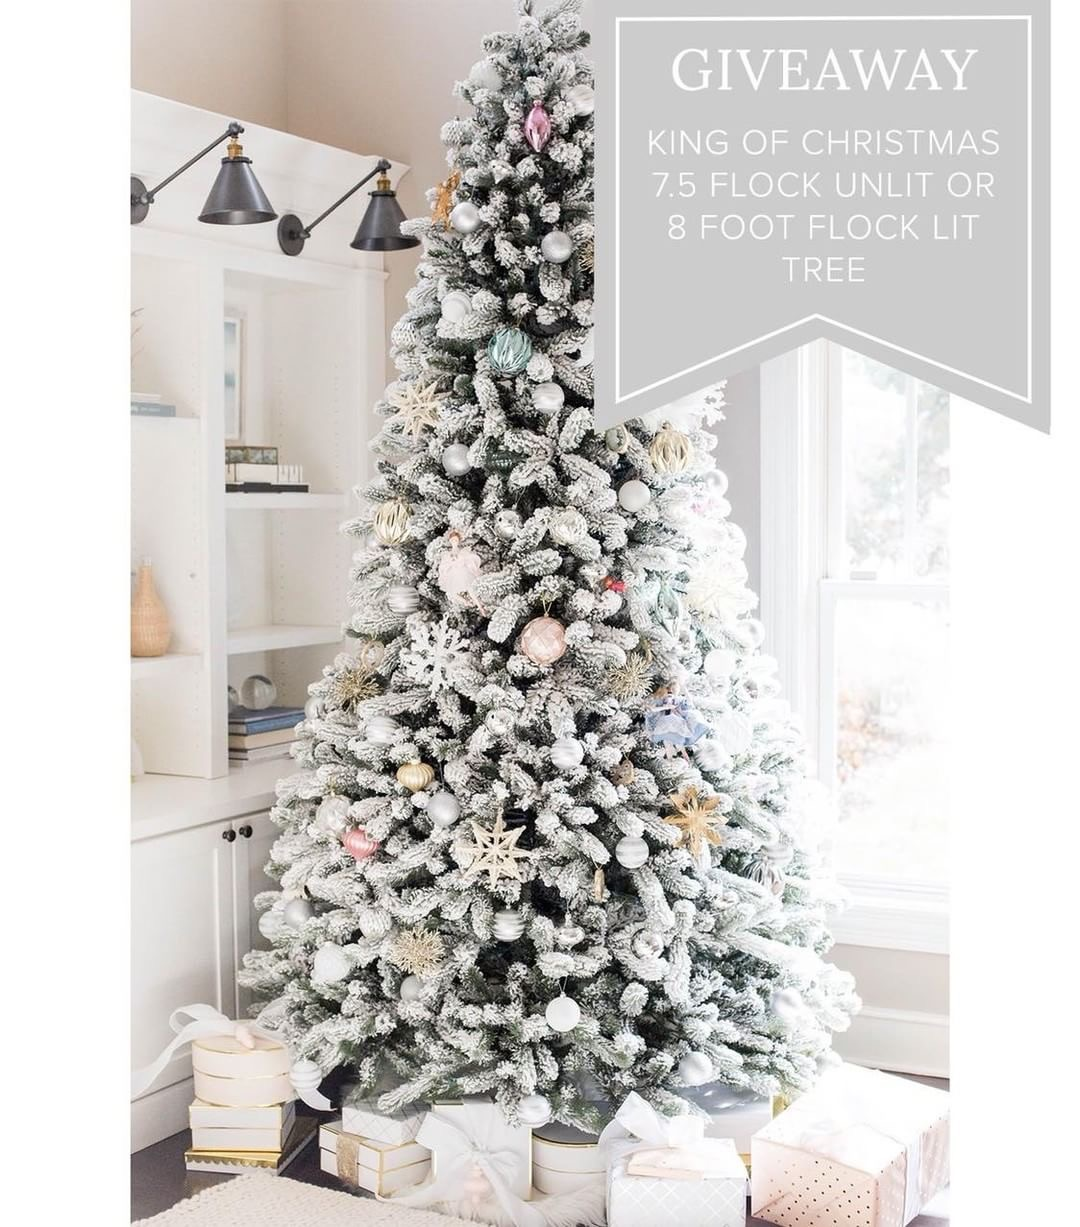 View From My Heels Christmas Tree Giveaway And An Exciting